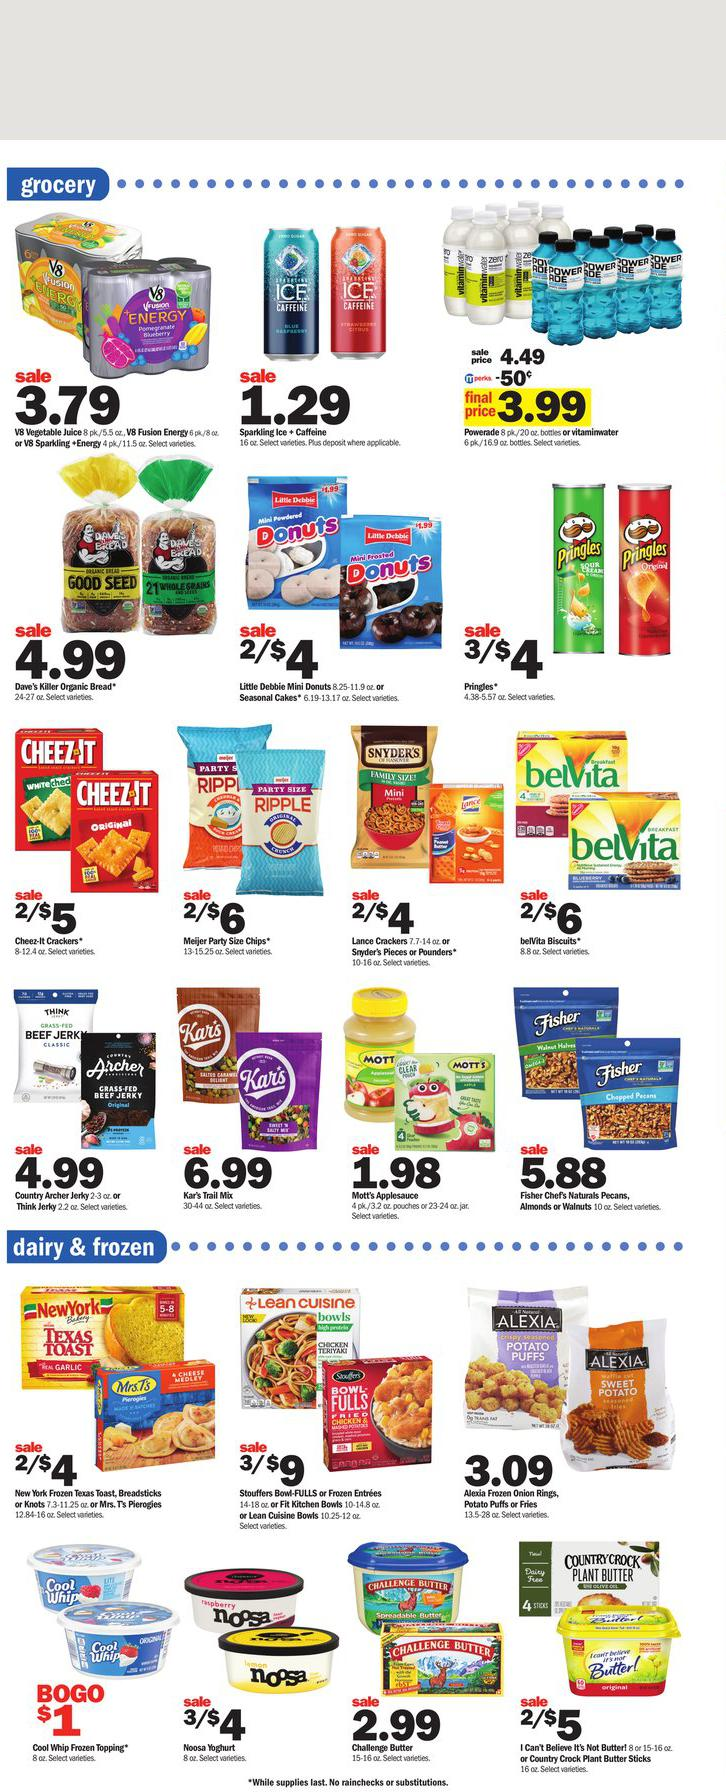 21.02.2021 Meijer ad 5. page